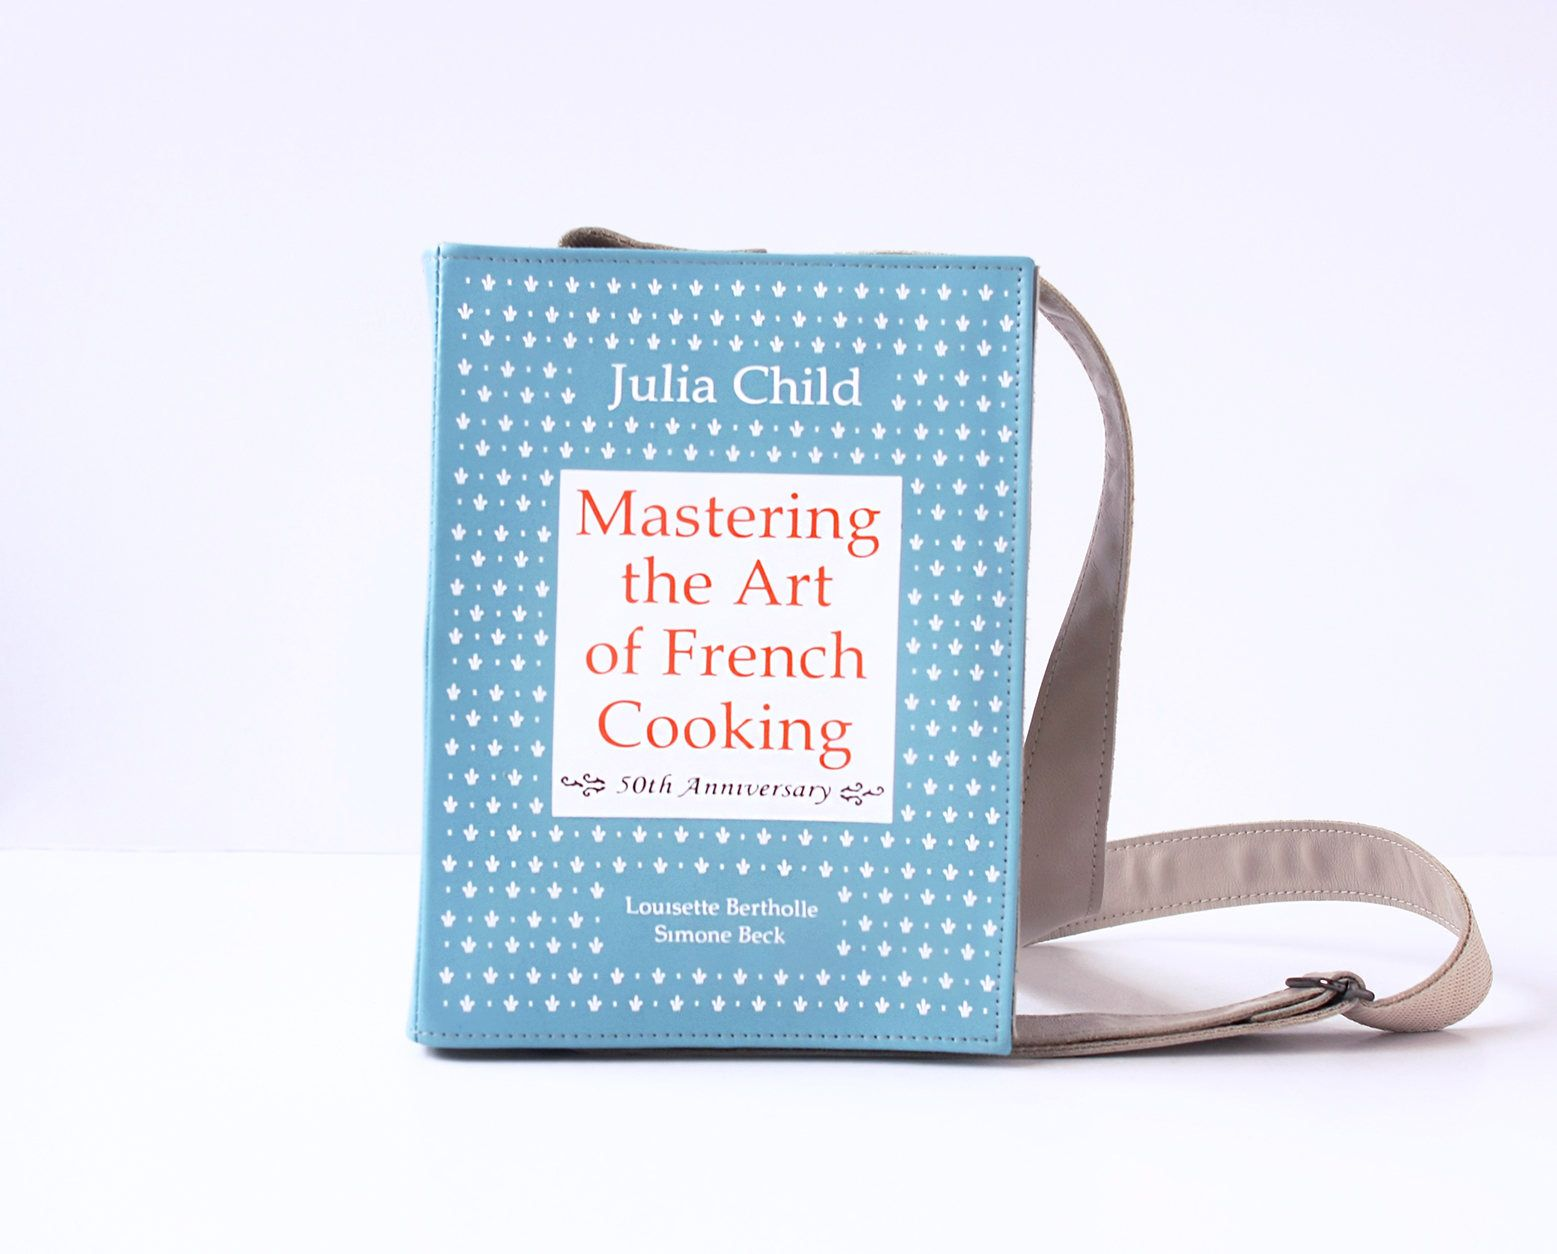 bc0e6303944d9 French Cooking Leather Book Bag Julia Child Book Purse